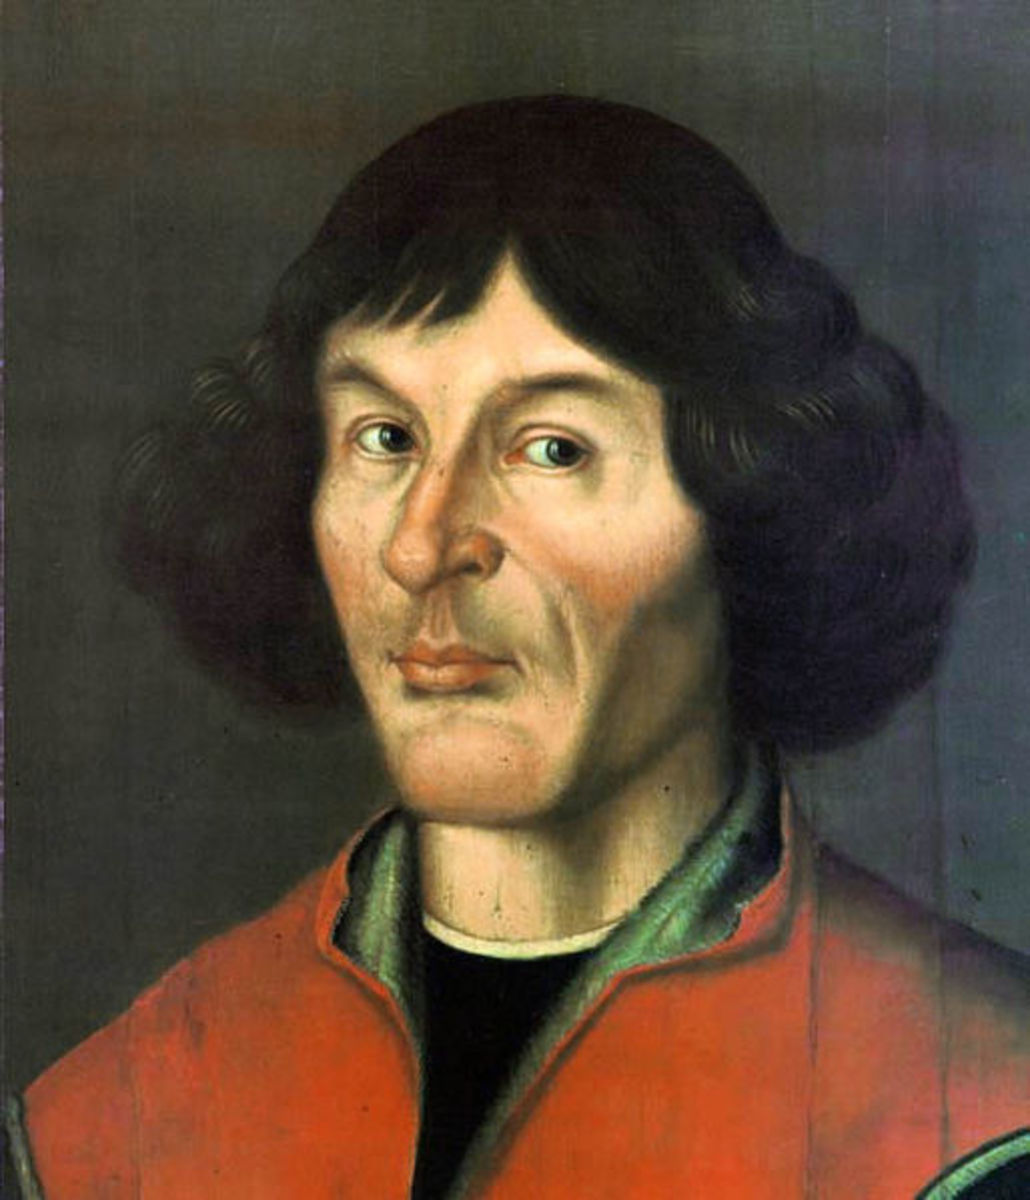 Nicolaus Copernicus, or Nikolaur Kopernikus, proponent of the Heliocentric theory,